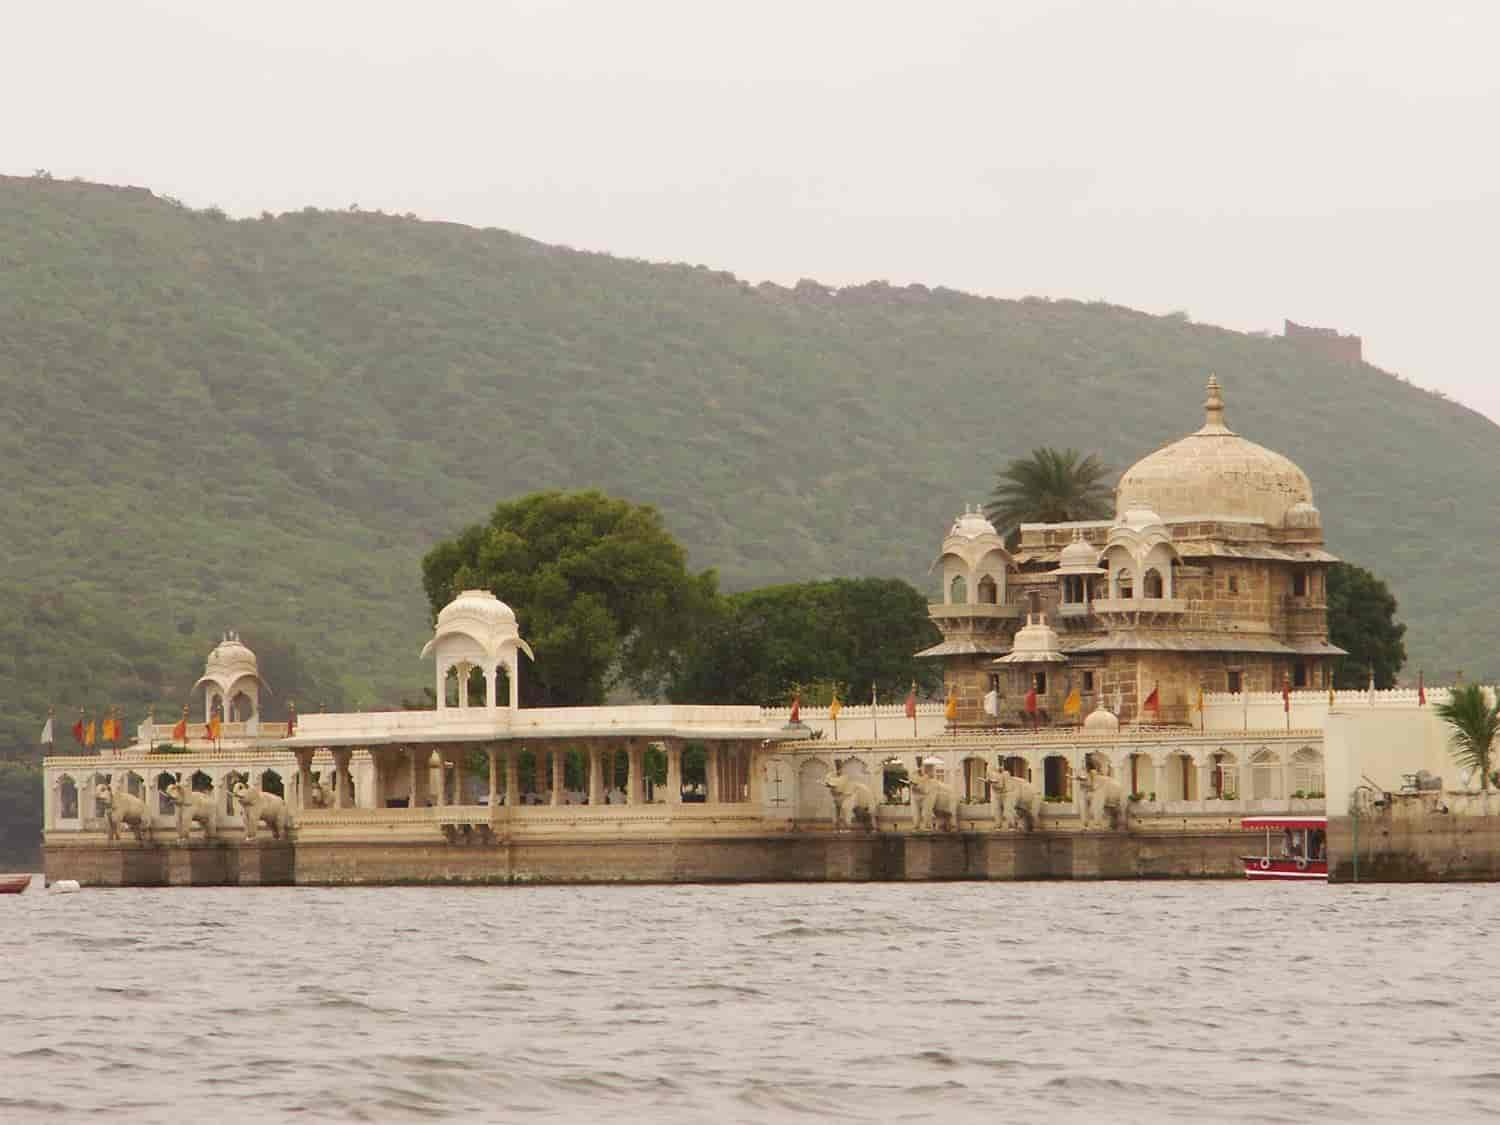 Jagmandir-in-the-picturesque-Lake-Pichola-udaipur-india